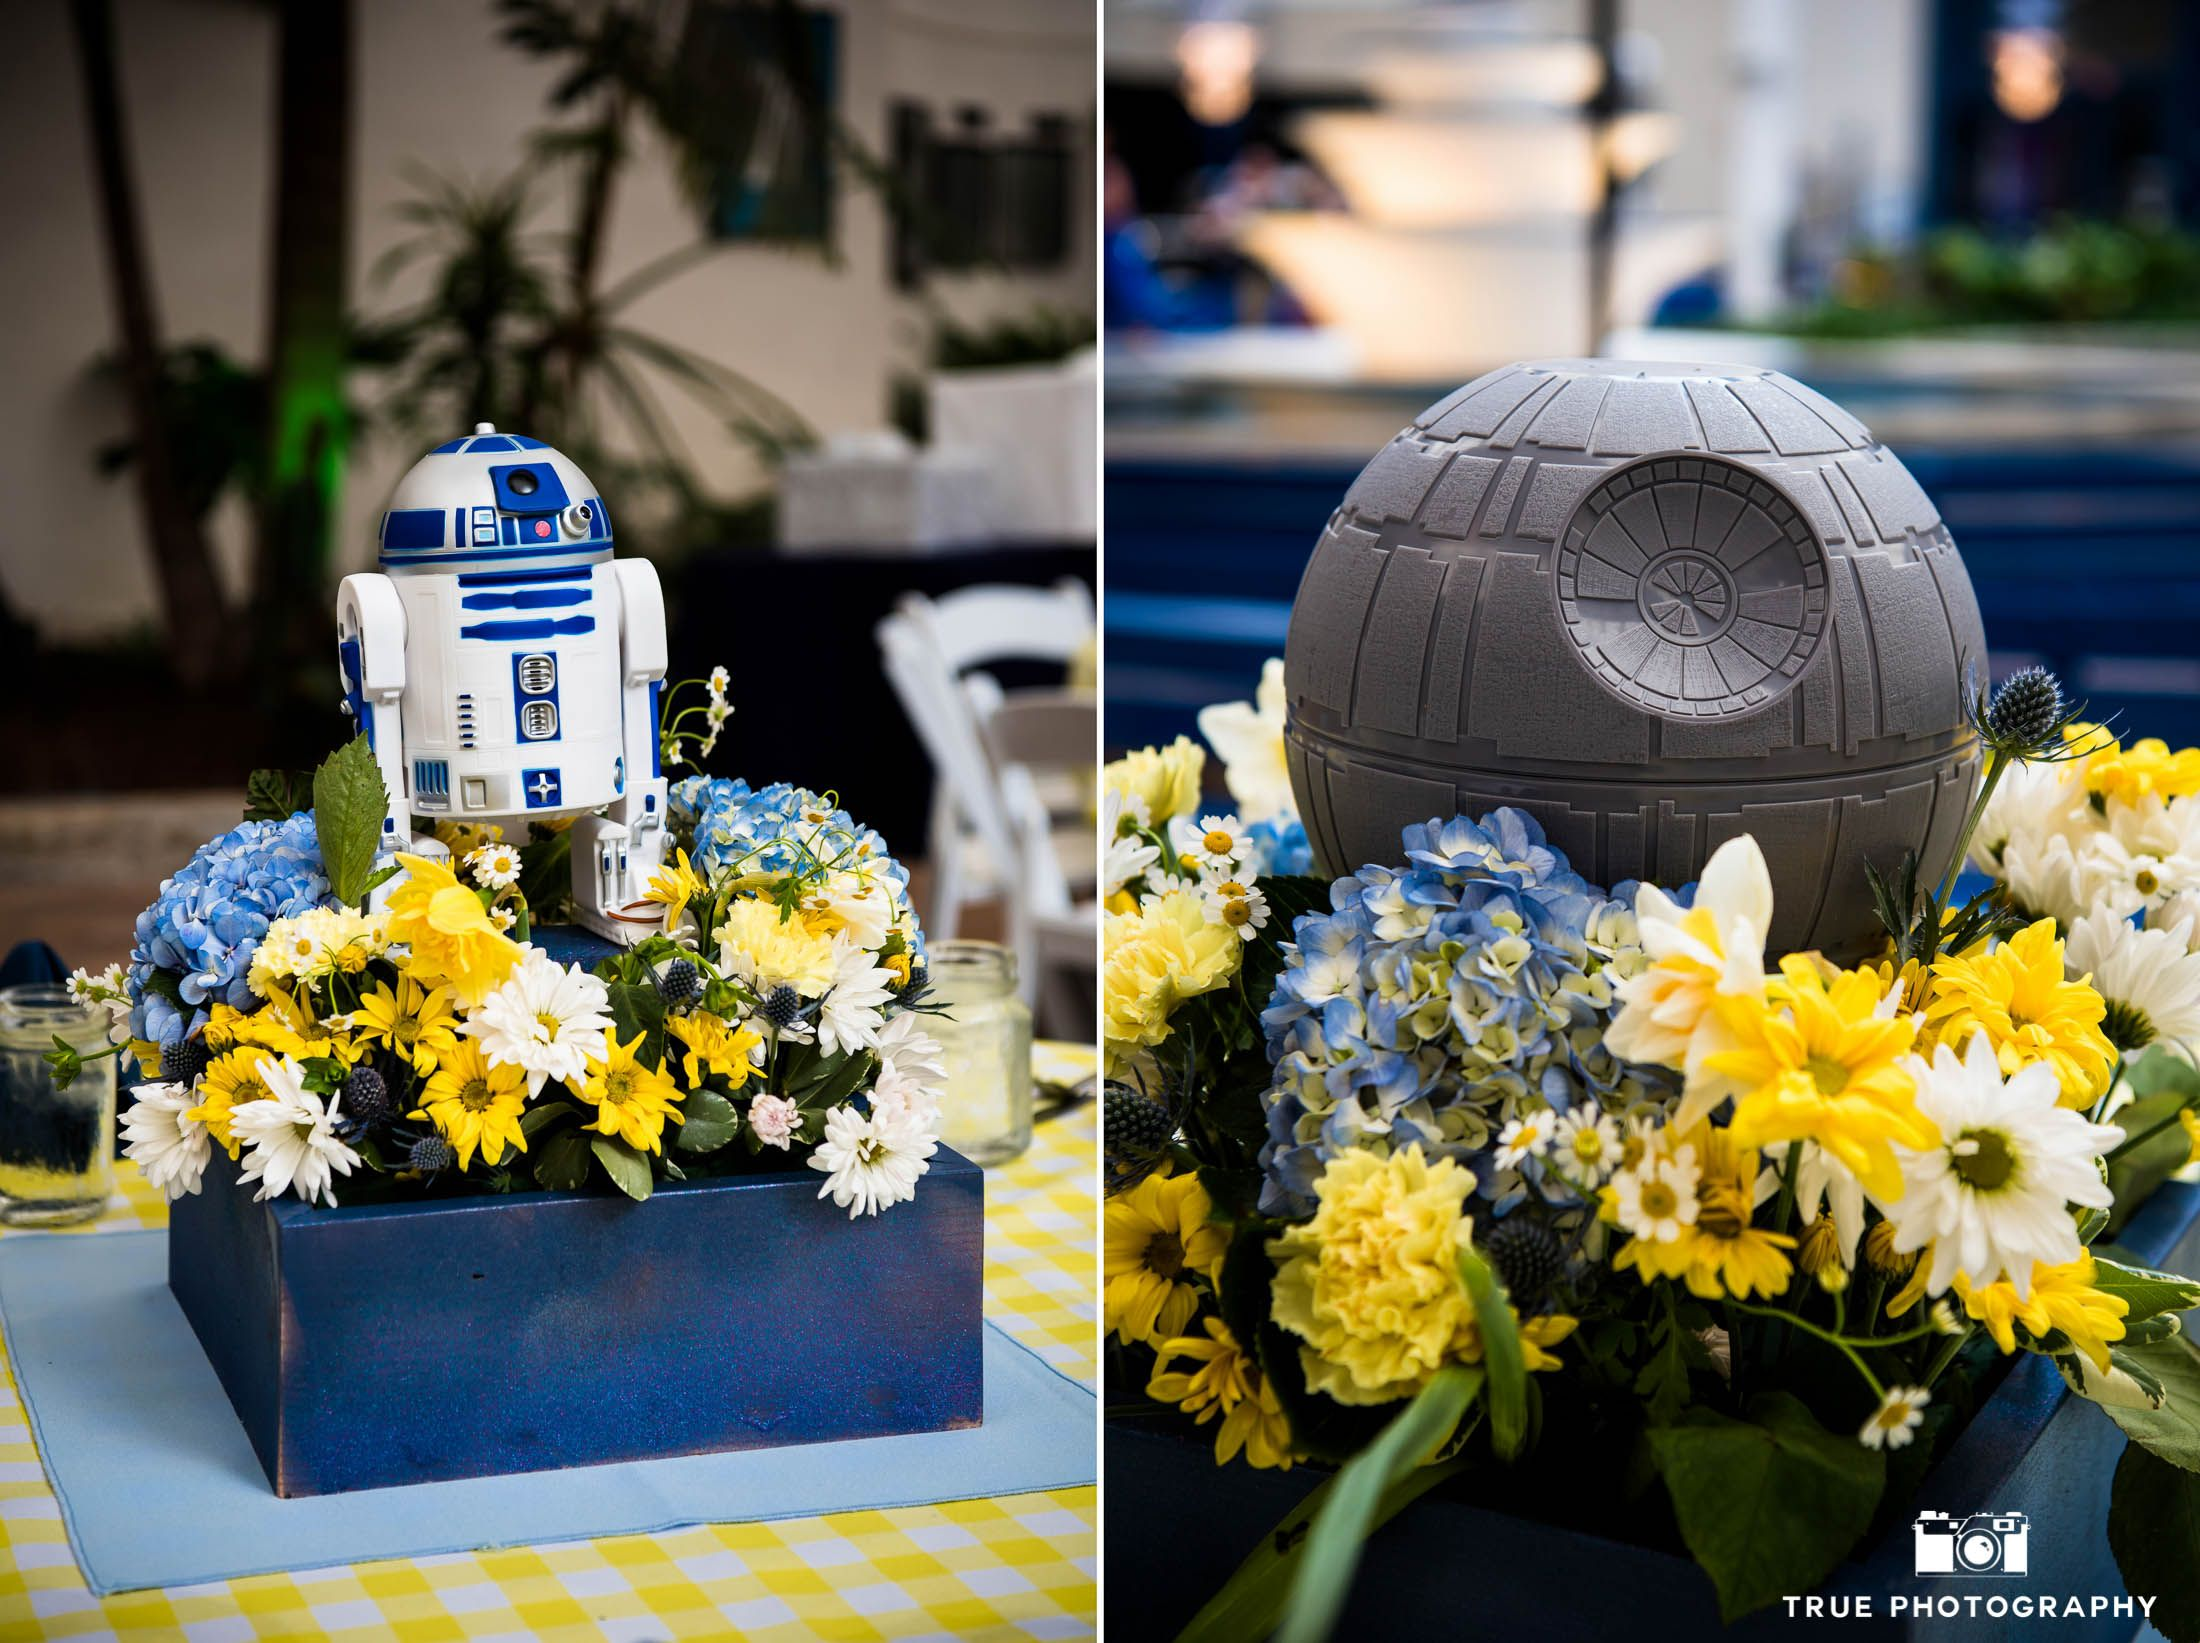 Star Wars Decorations Ideas Stars Wars Themed Centerpieces During Reception At Air And